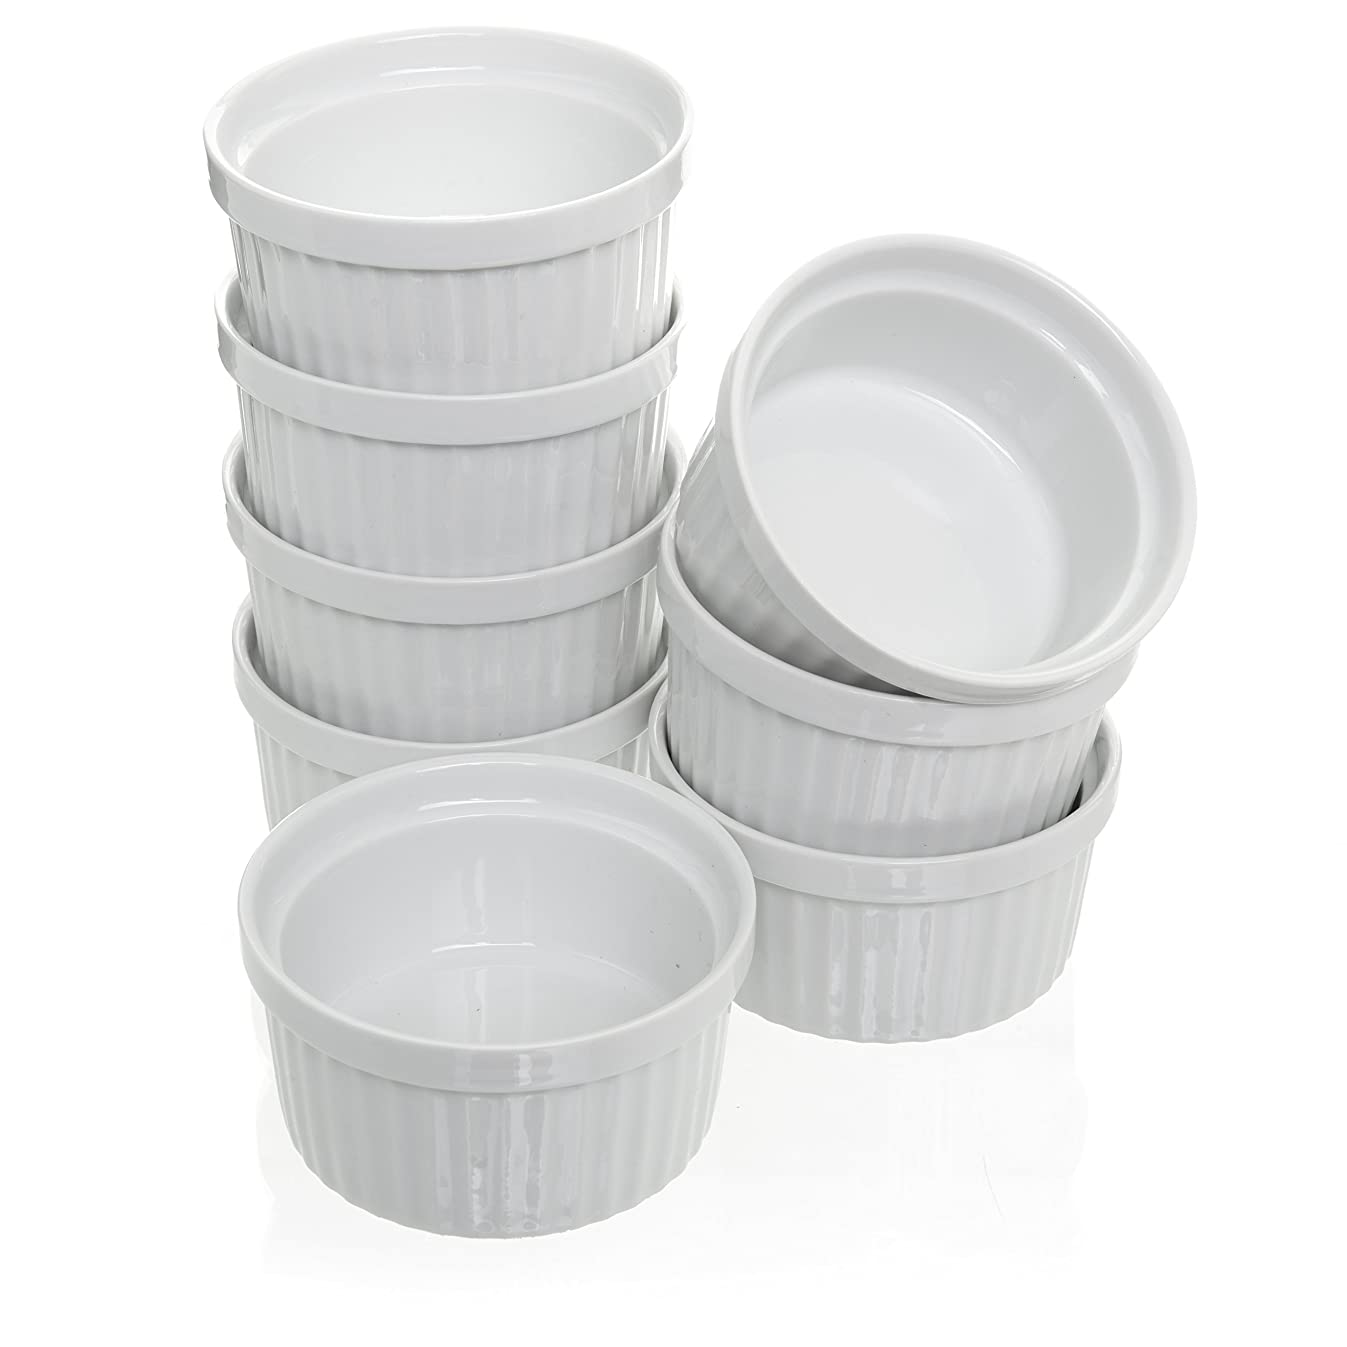 Set of 8,4 oz Porcelain Ramekins Bakeware Set, White Porcelain Baking Cups for Pudding, Creme Brulee, Custard Cups and Souffle Dishes, Durable 4 ounce Ramekins for Baking, Cooking, Serving and More